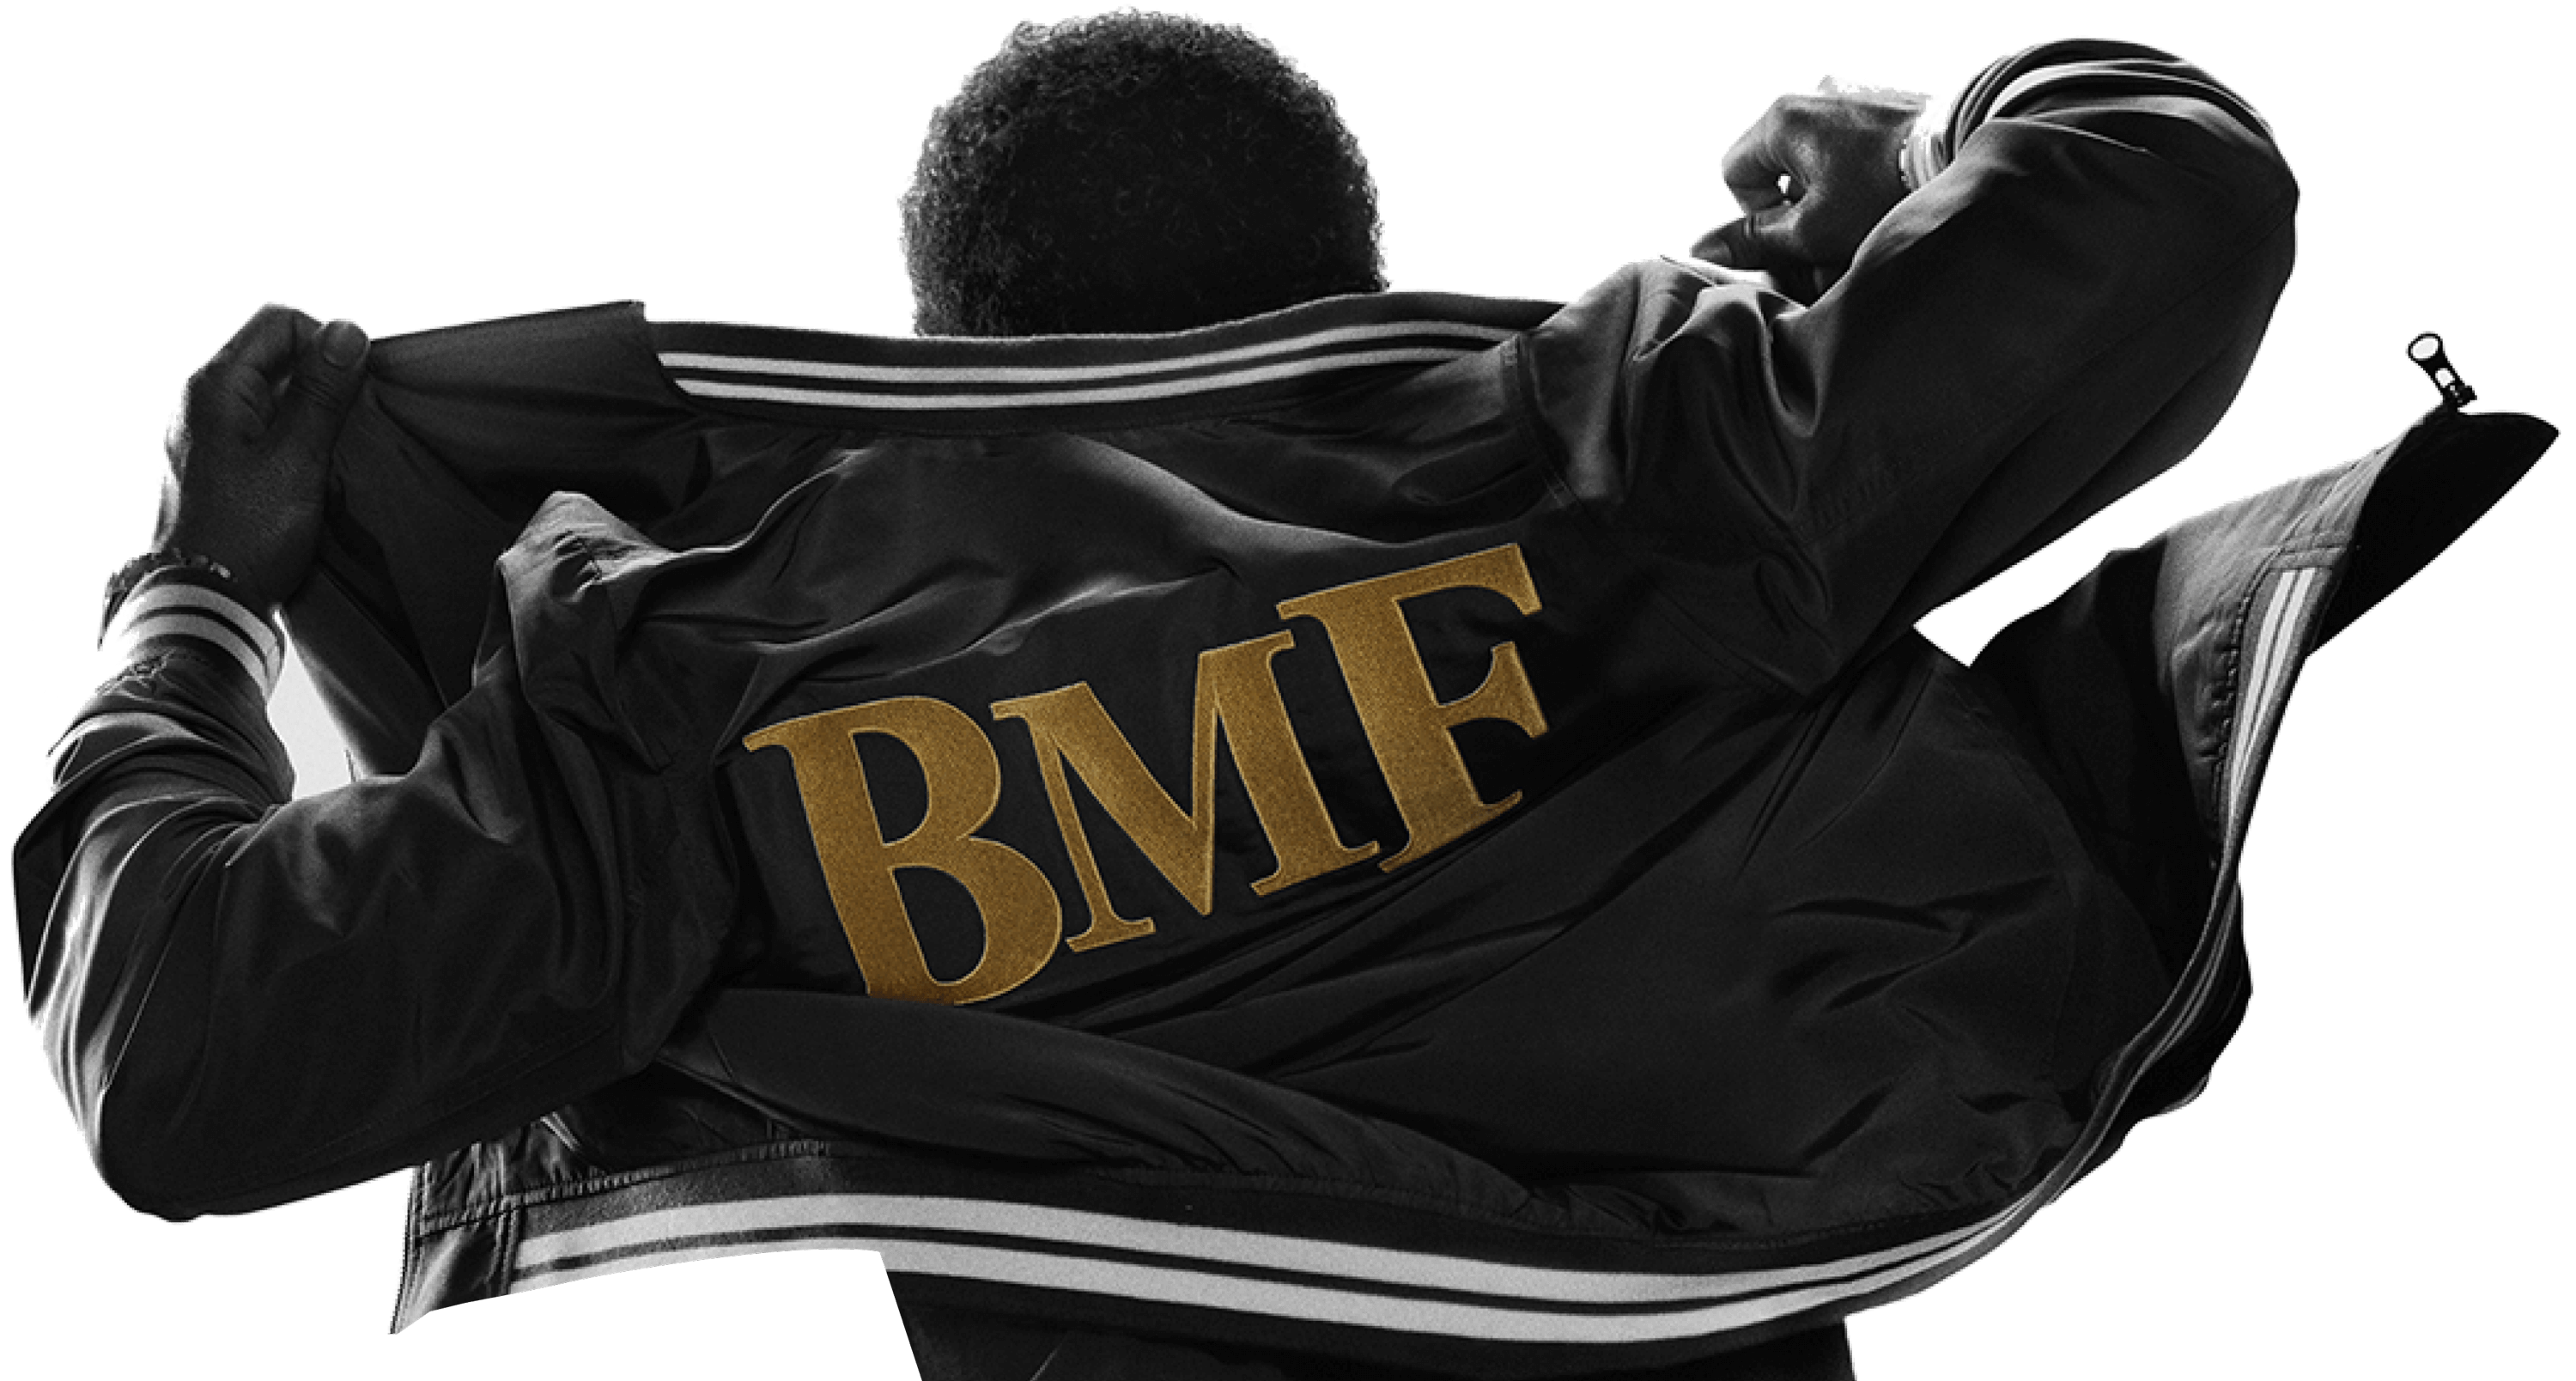 Man wearing jacket with BMF letters on the back